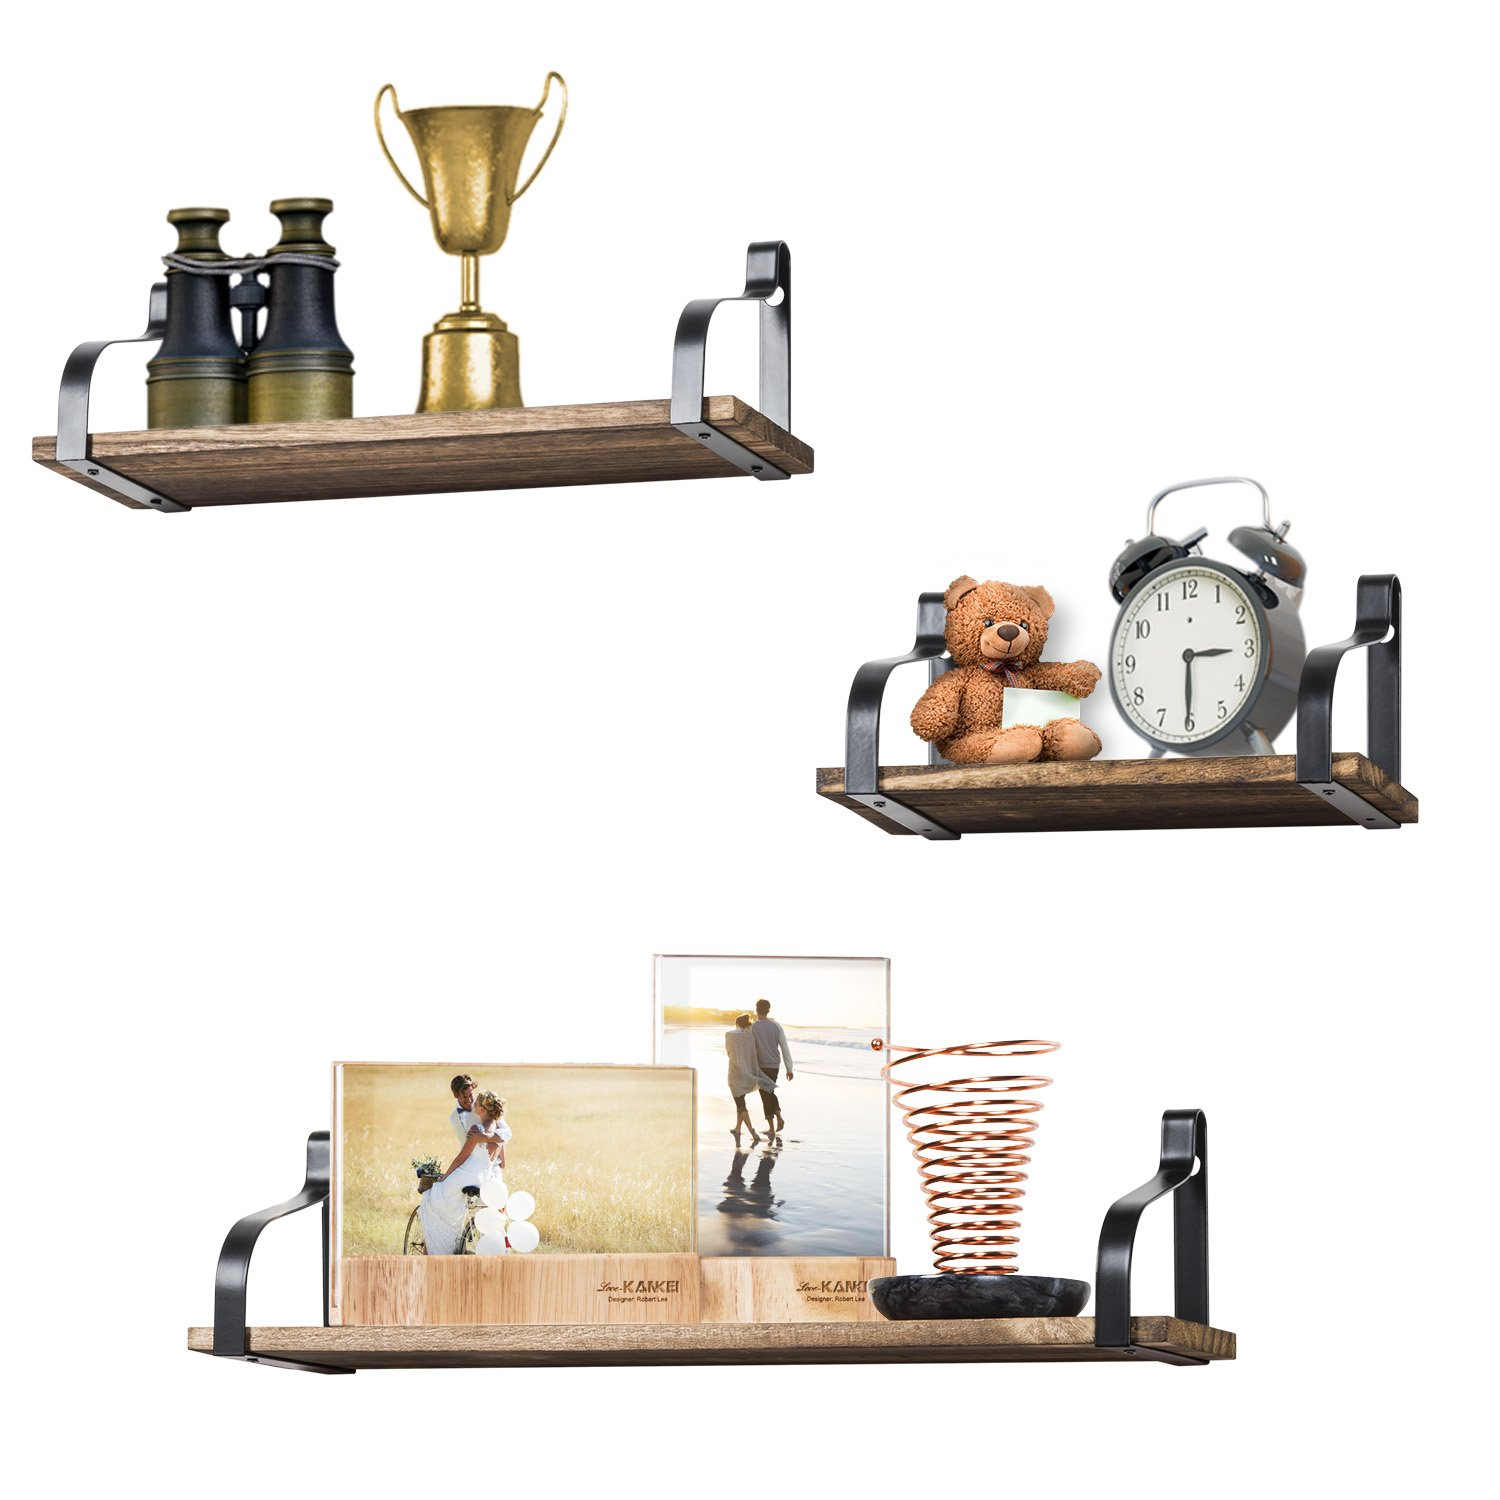 Love-KANKEI Floating Shelves Wall Mounted Set of 3, Rustic Wood Wall Storage Shelves for Bedroom, Living Room, Bathroom, Kitchen, Office and More by Love-KANKEI (Image #7)